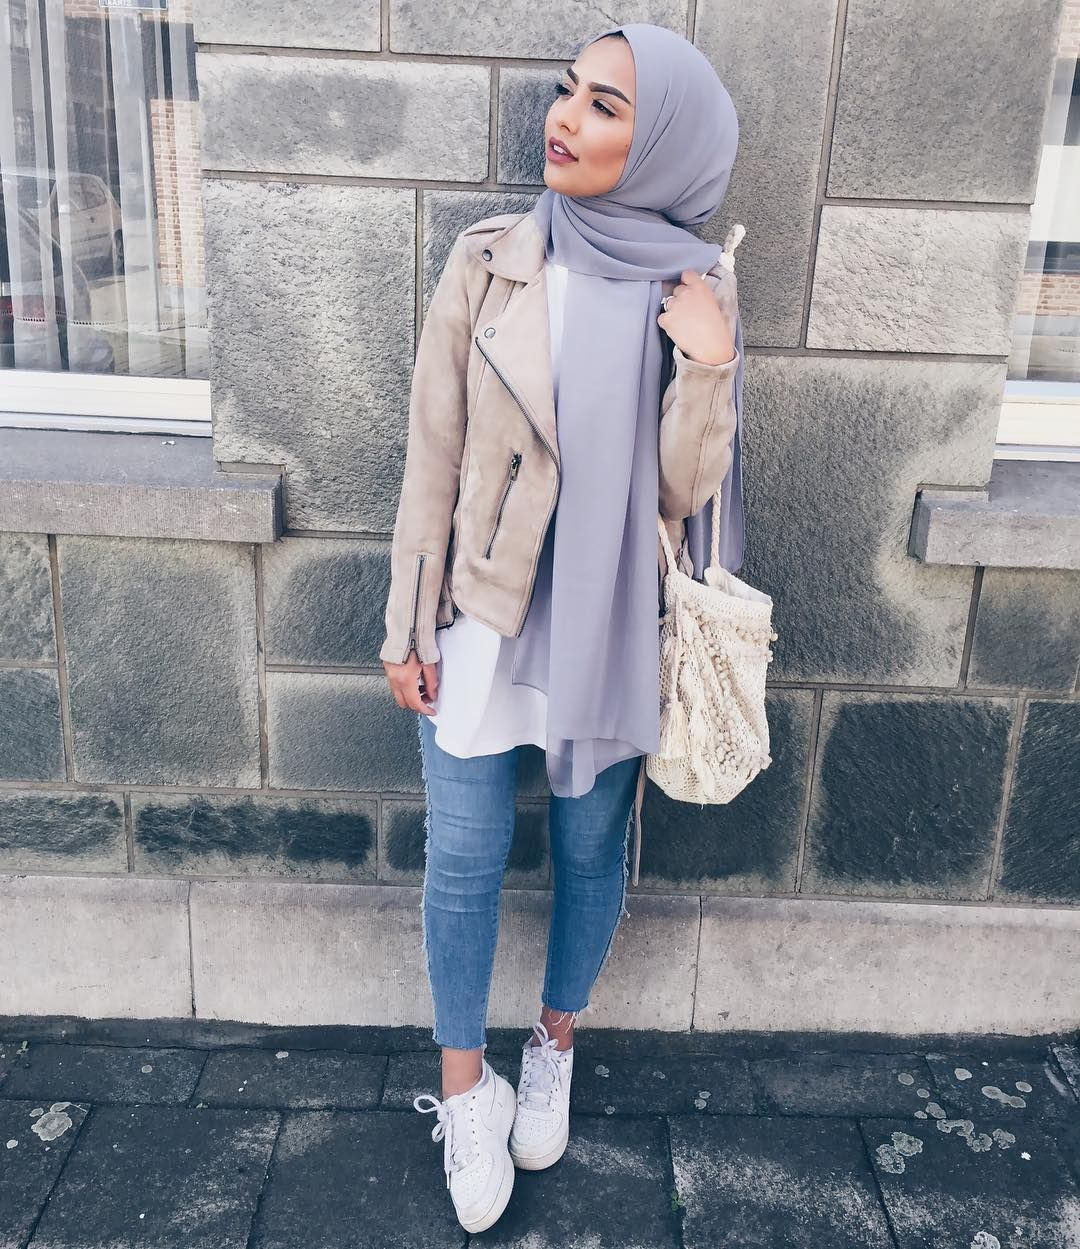 Pin By Lenah On Hijab | Pinterest | Instagram Hijab Outfit And Modest Fashion